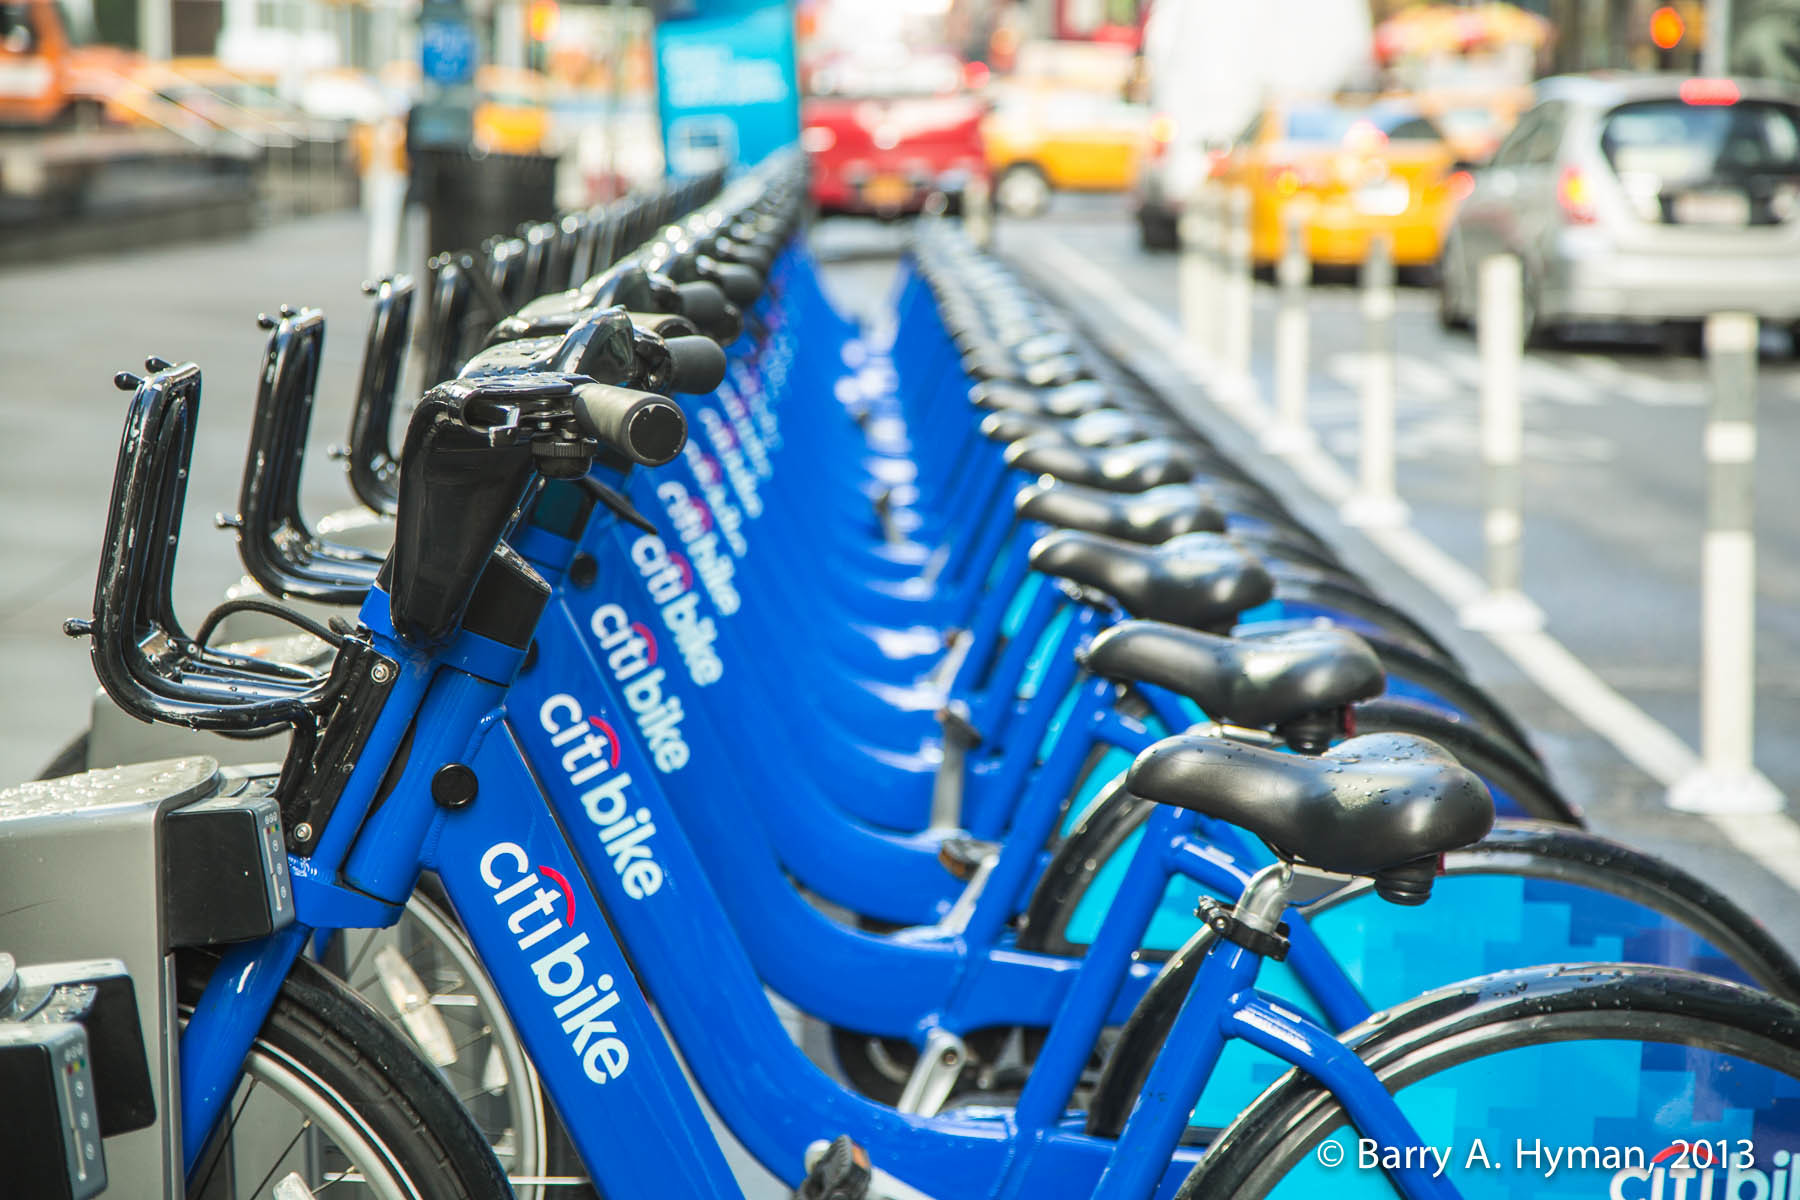 BAH-2013_11_16-1912citibike.jpg